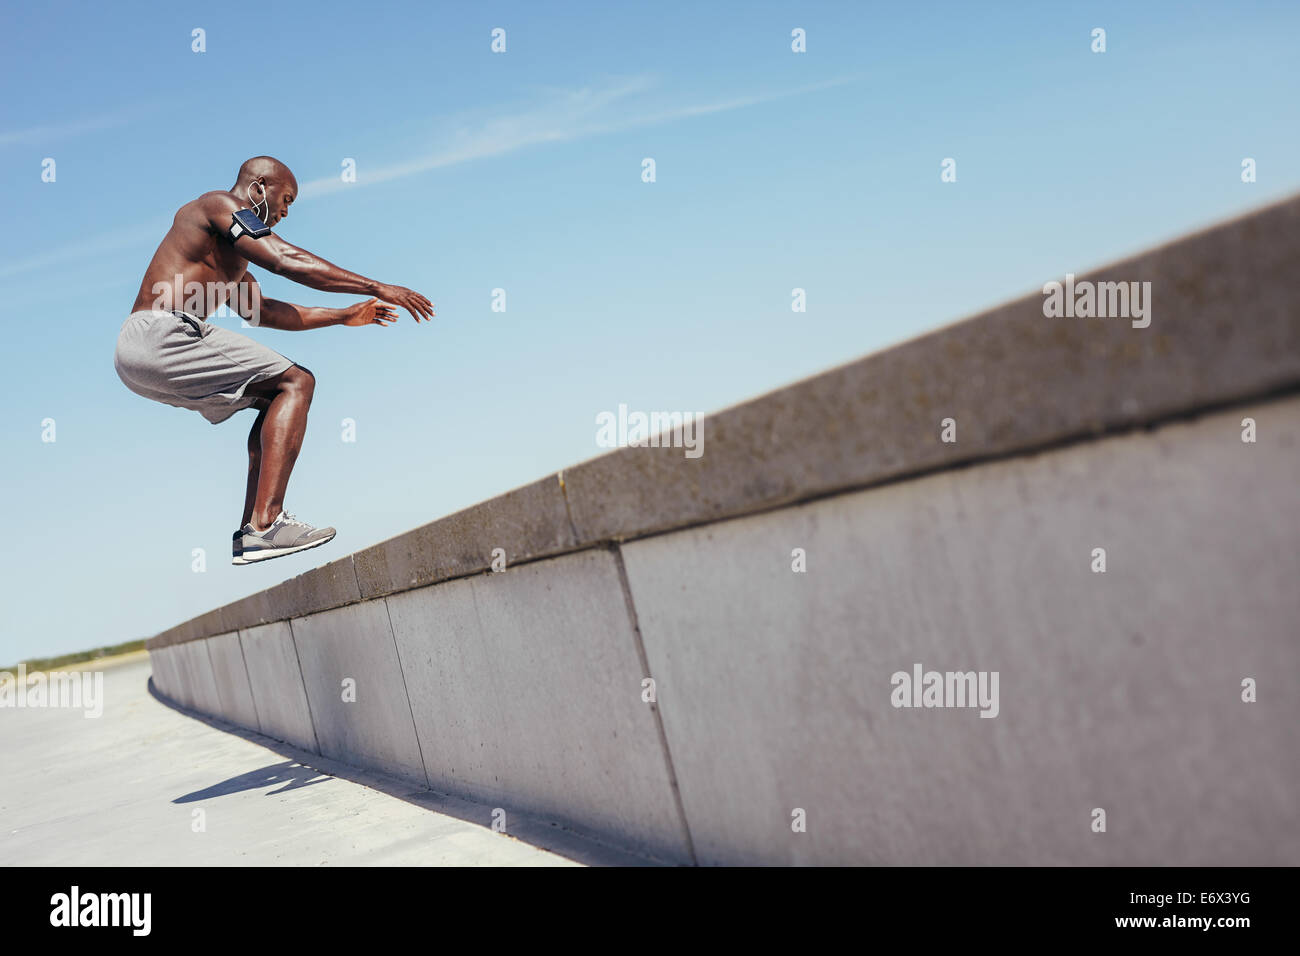 Shirtless african athlete working out on cross fit jump box outside on a wall. Muscular man doing box jumps outdoors. - Stock Image